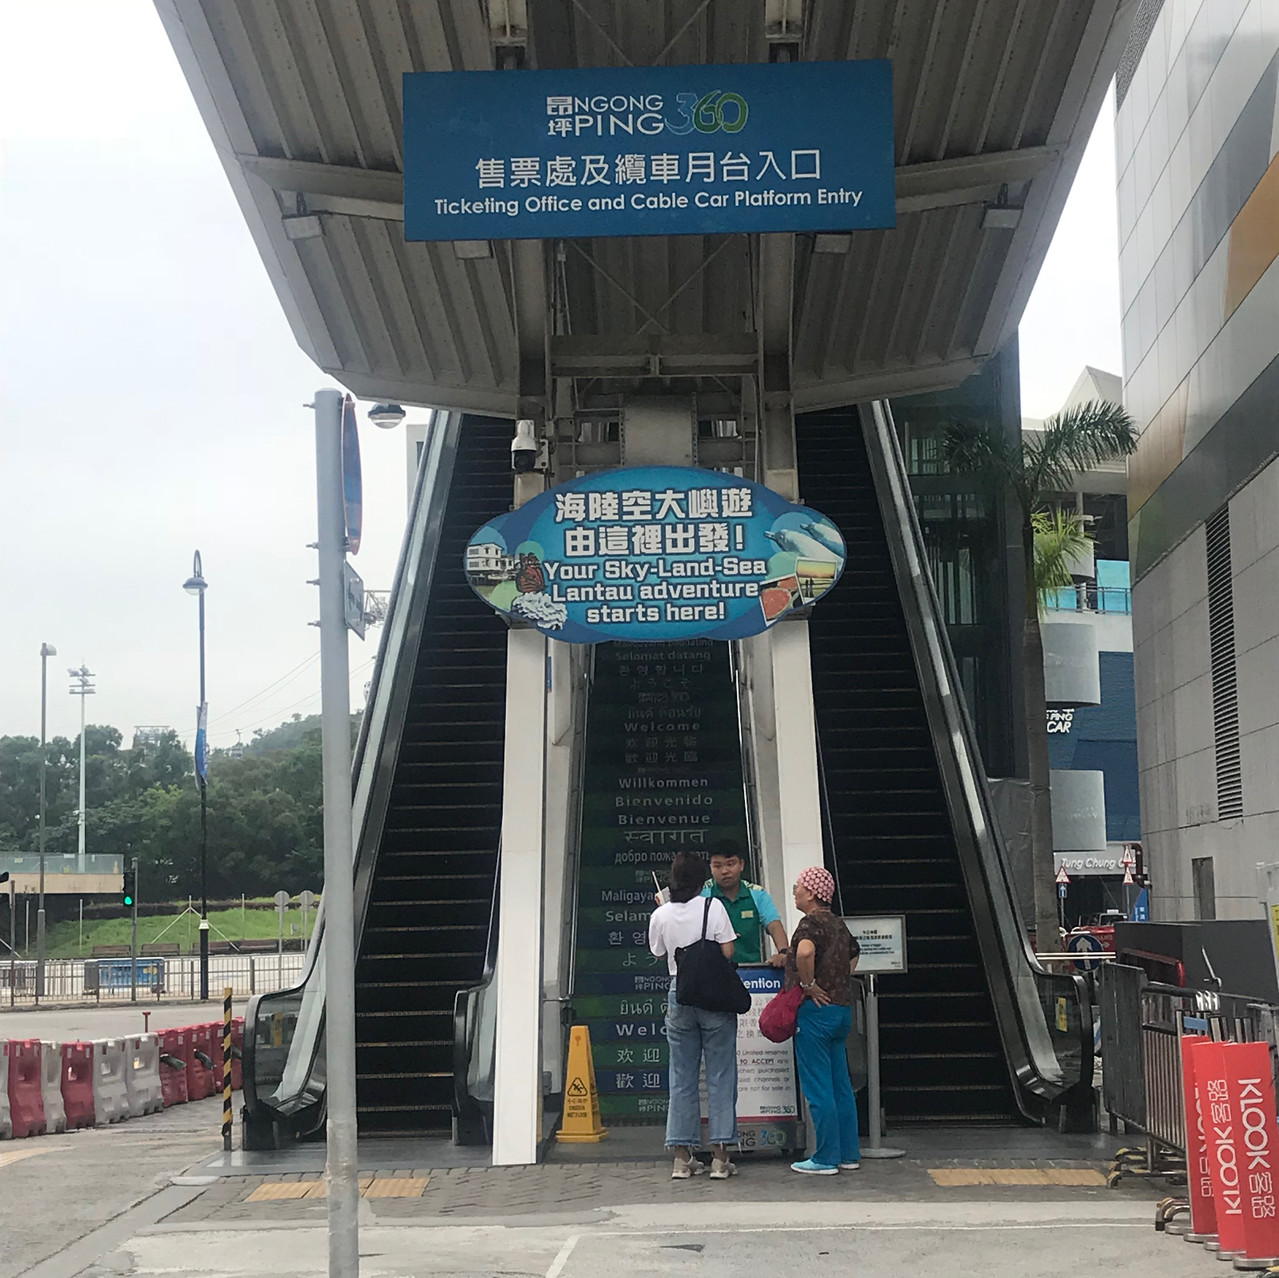 The Cable Car Ticket Office